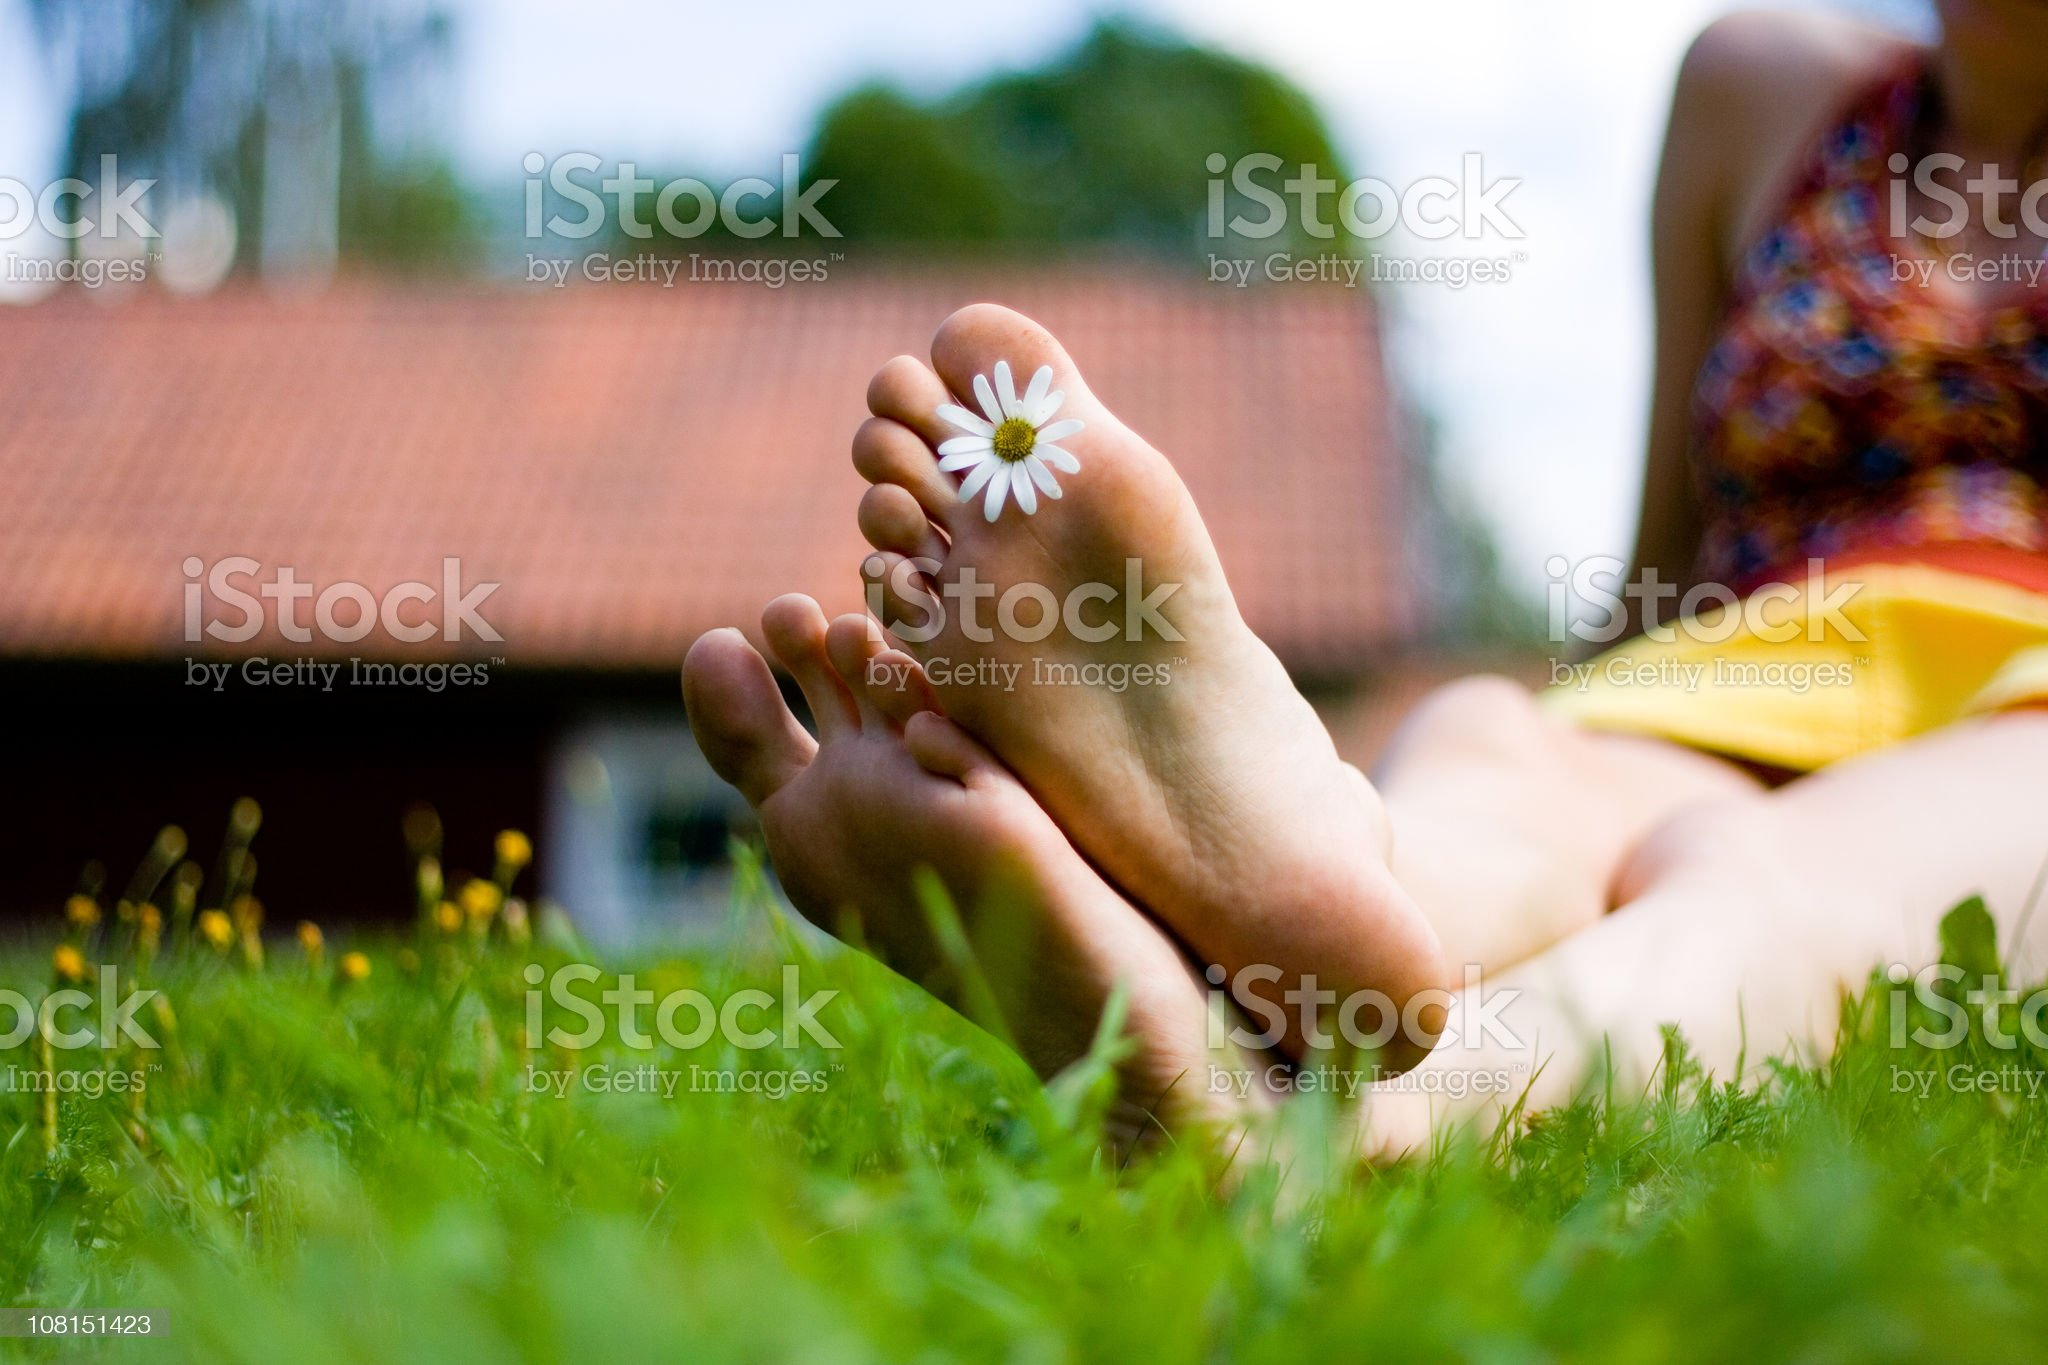 Young Woman Relaxing in Grass with Flower Between Toes royalty-free stock photo